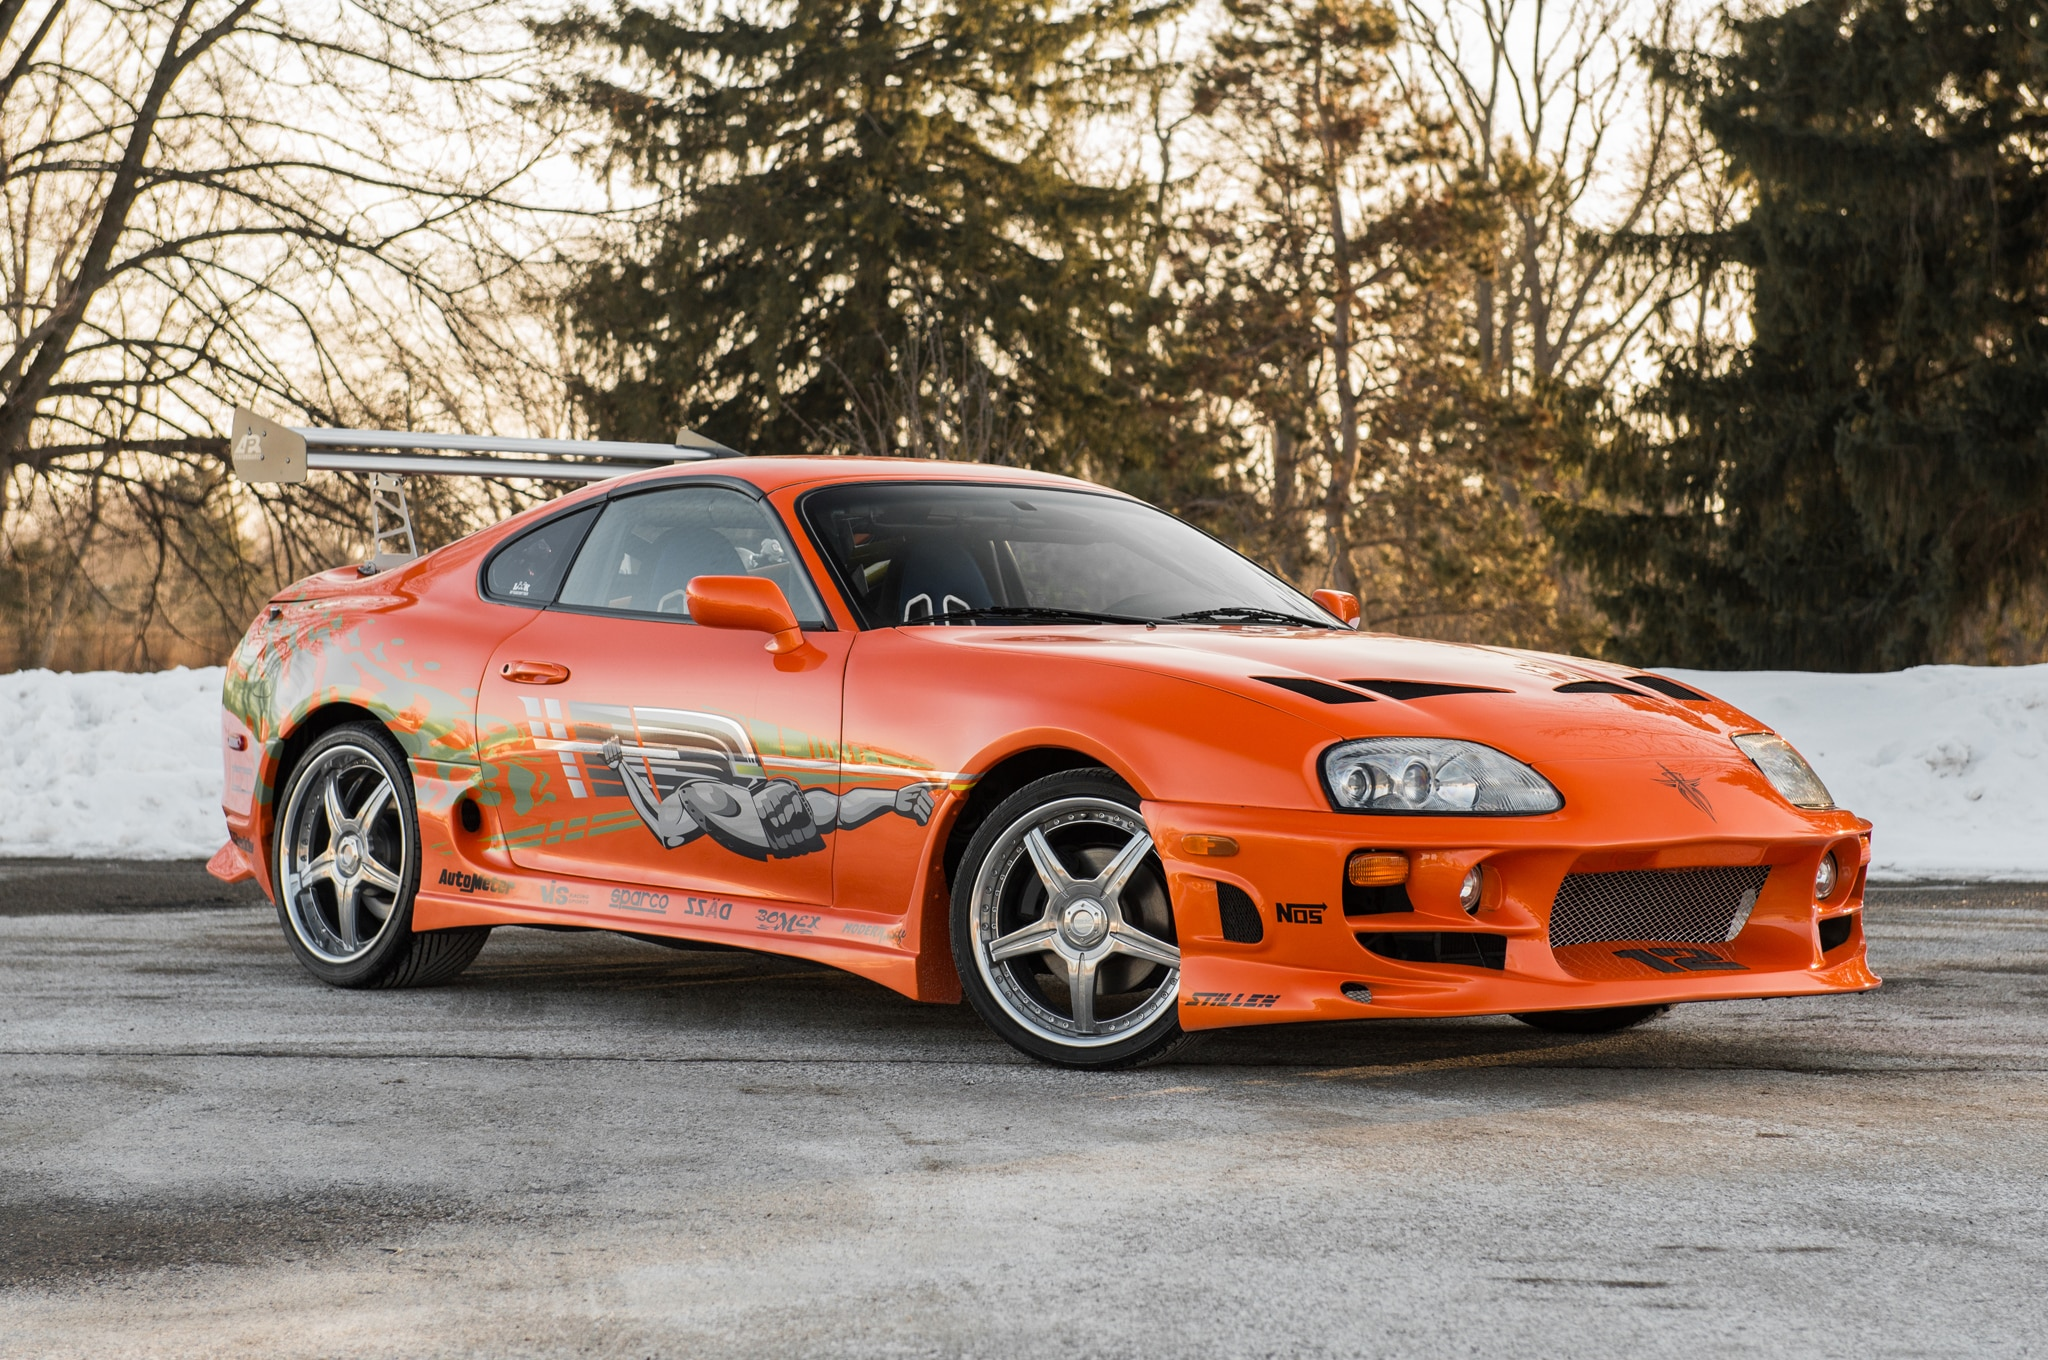 1993 Toyota Supra From The Fast And The Furious Front Three Quarter 03